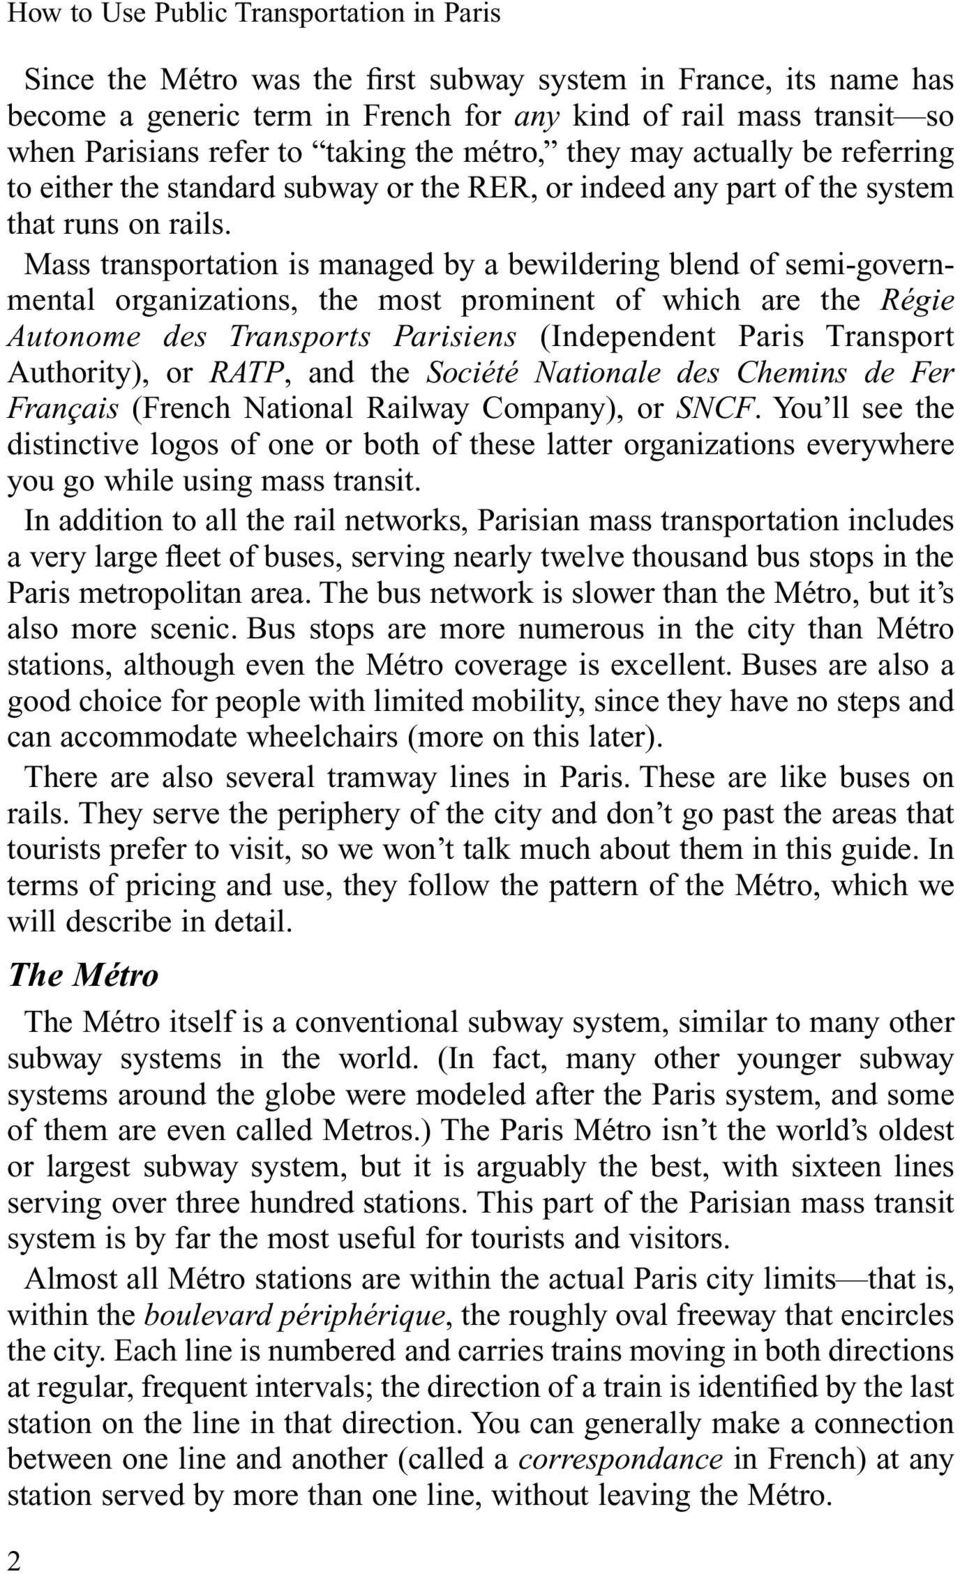 Mass transportation is managed by a bewildering blend of semi-governmental organizations, the most prominent of which are the Régie Autonome des Transports Parisiens (Independent Paris Transport